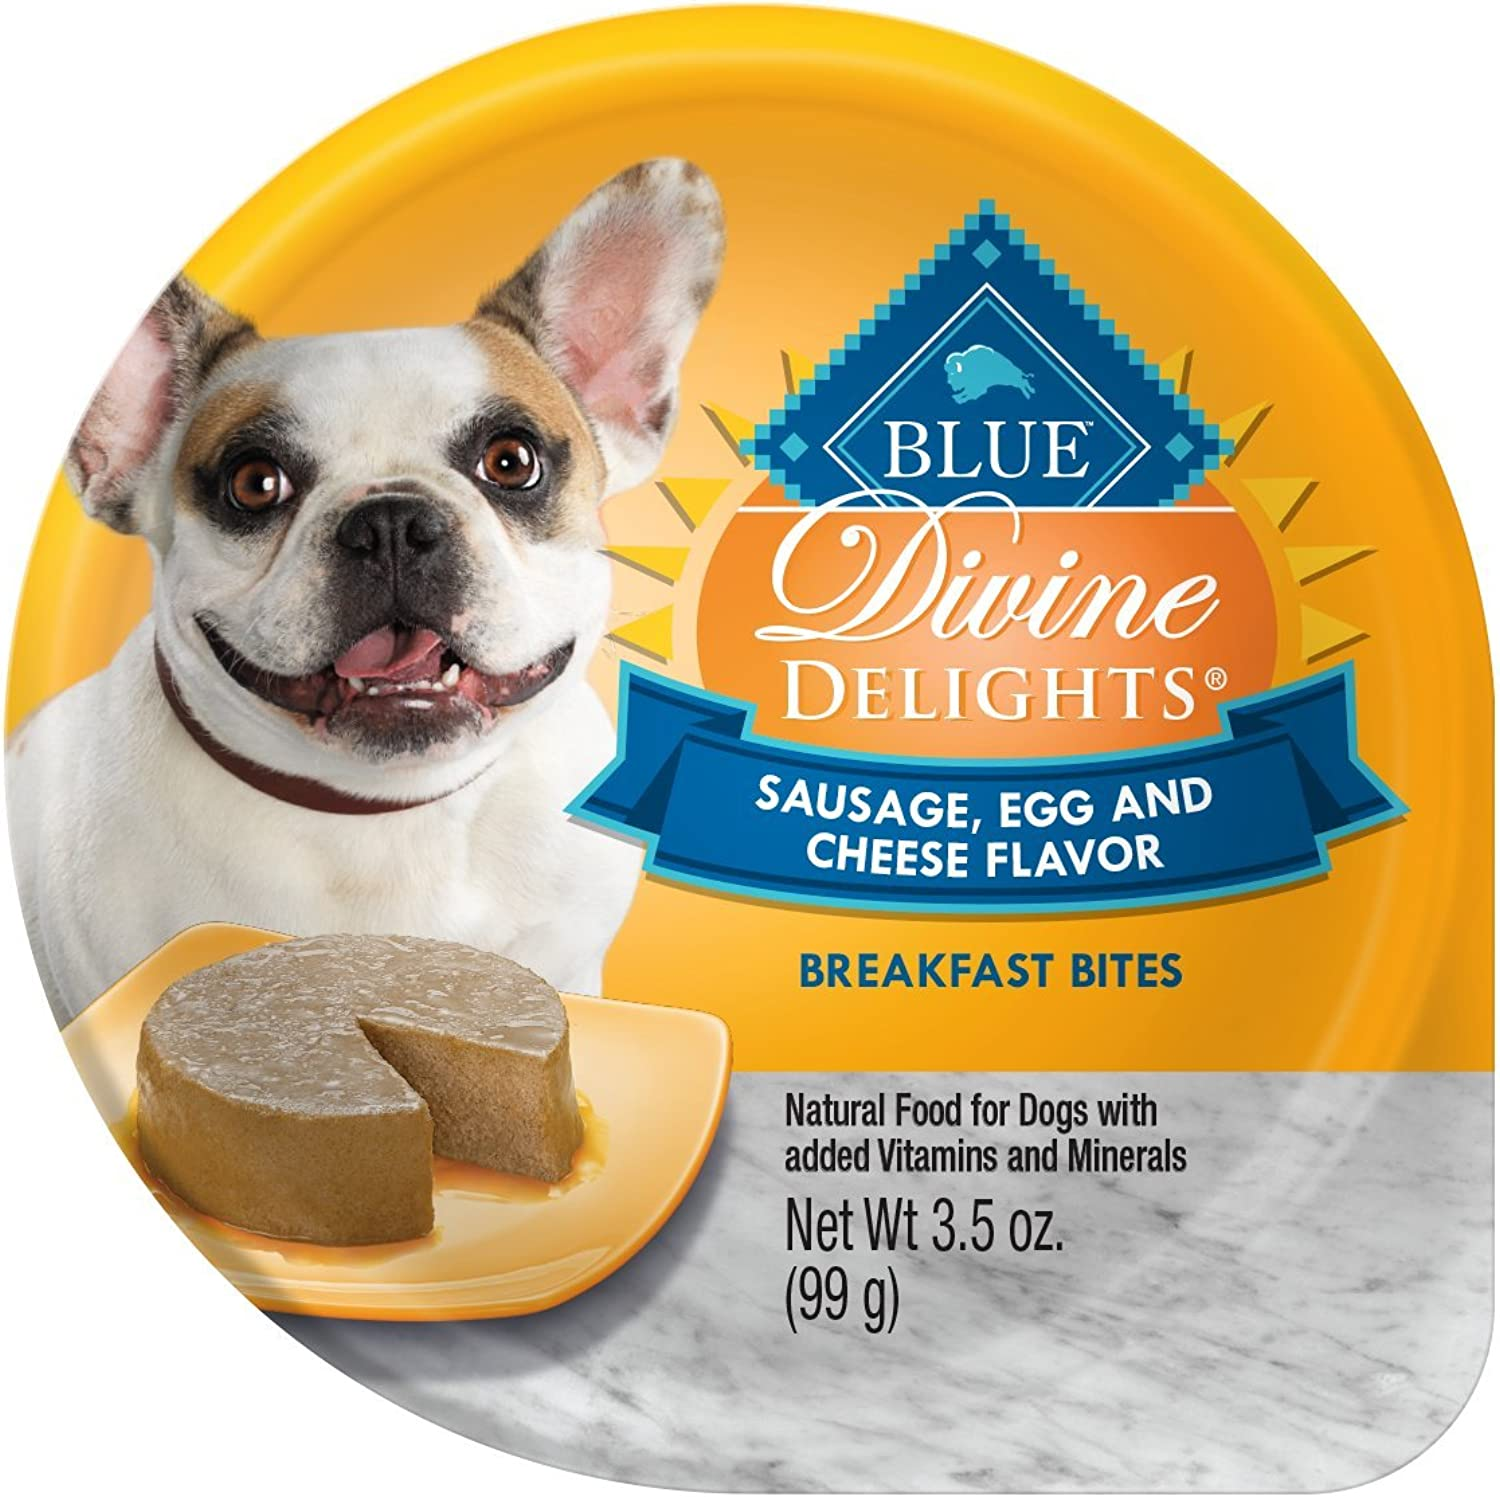 bluee Buffalo Divine Delights Natural Adult Small Breed Wet Dog Food Cup, Sausage, Egg & Cheese Breakfast Bites 3.5oz (Pack of 12)